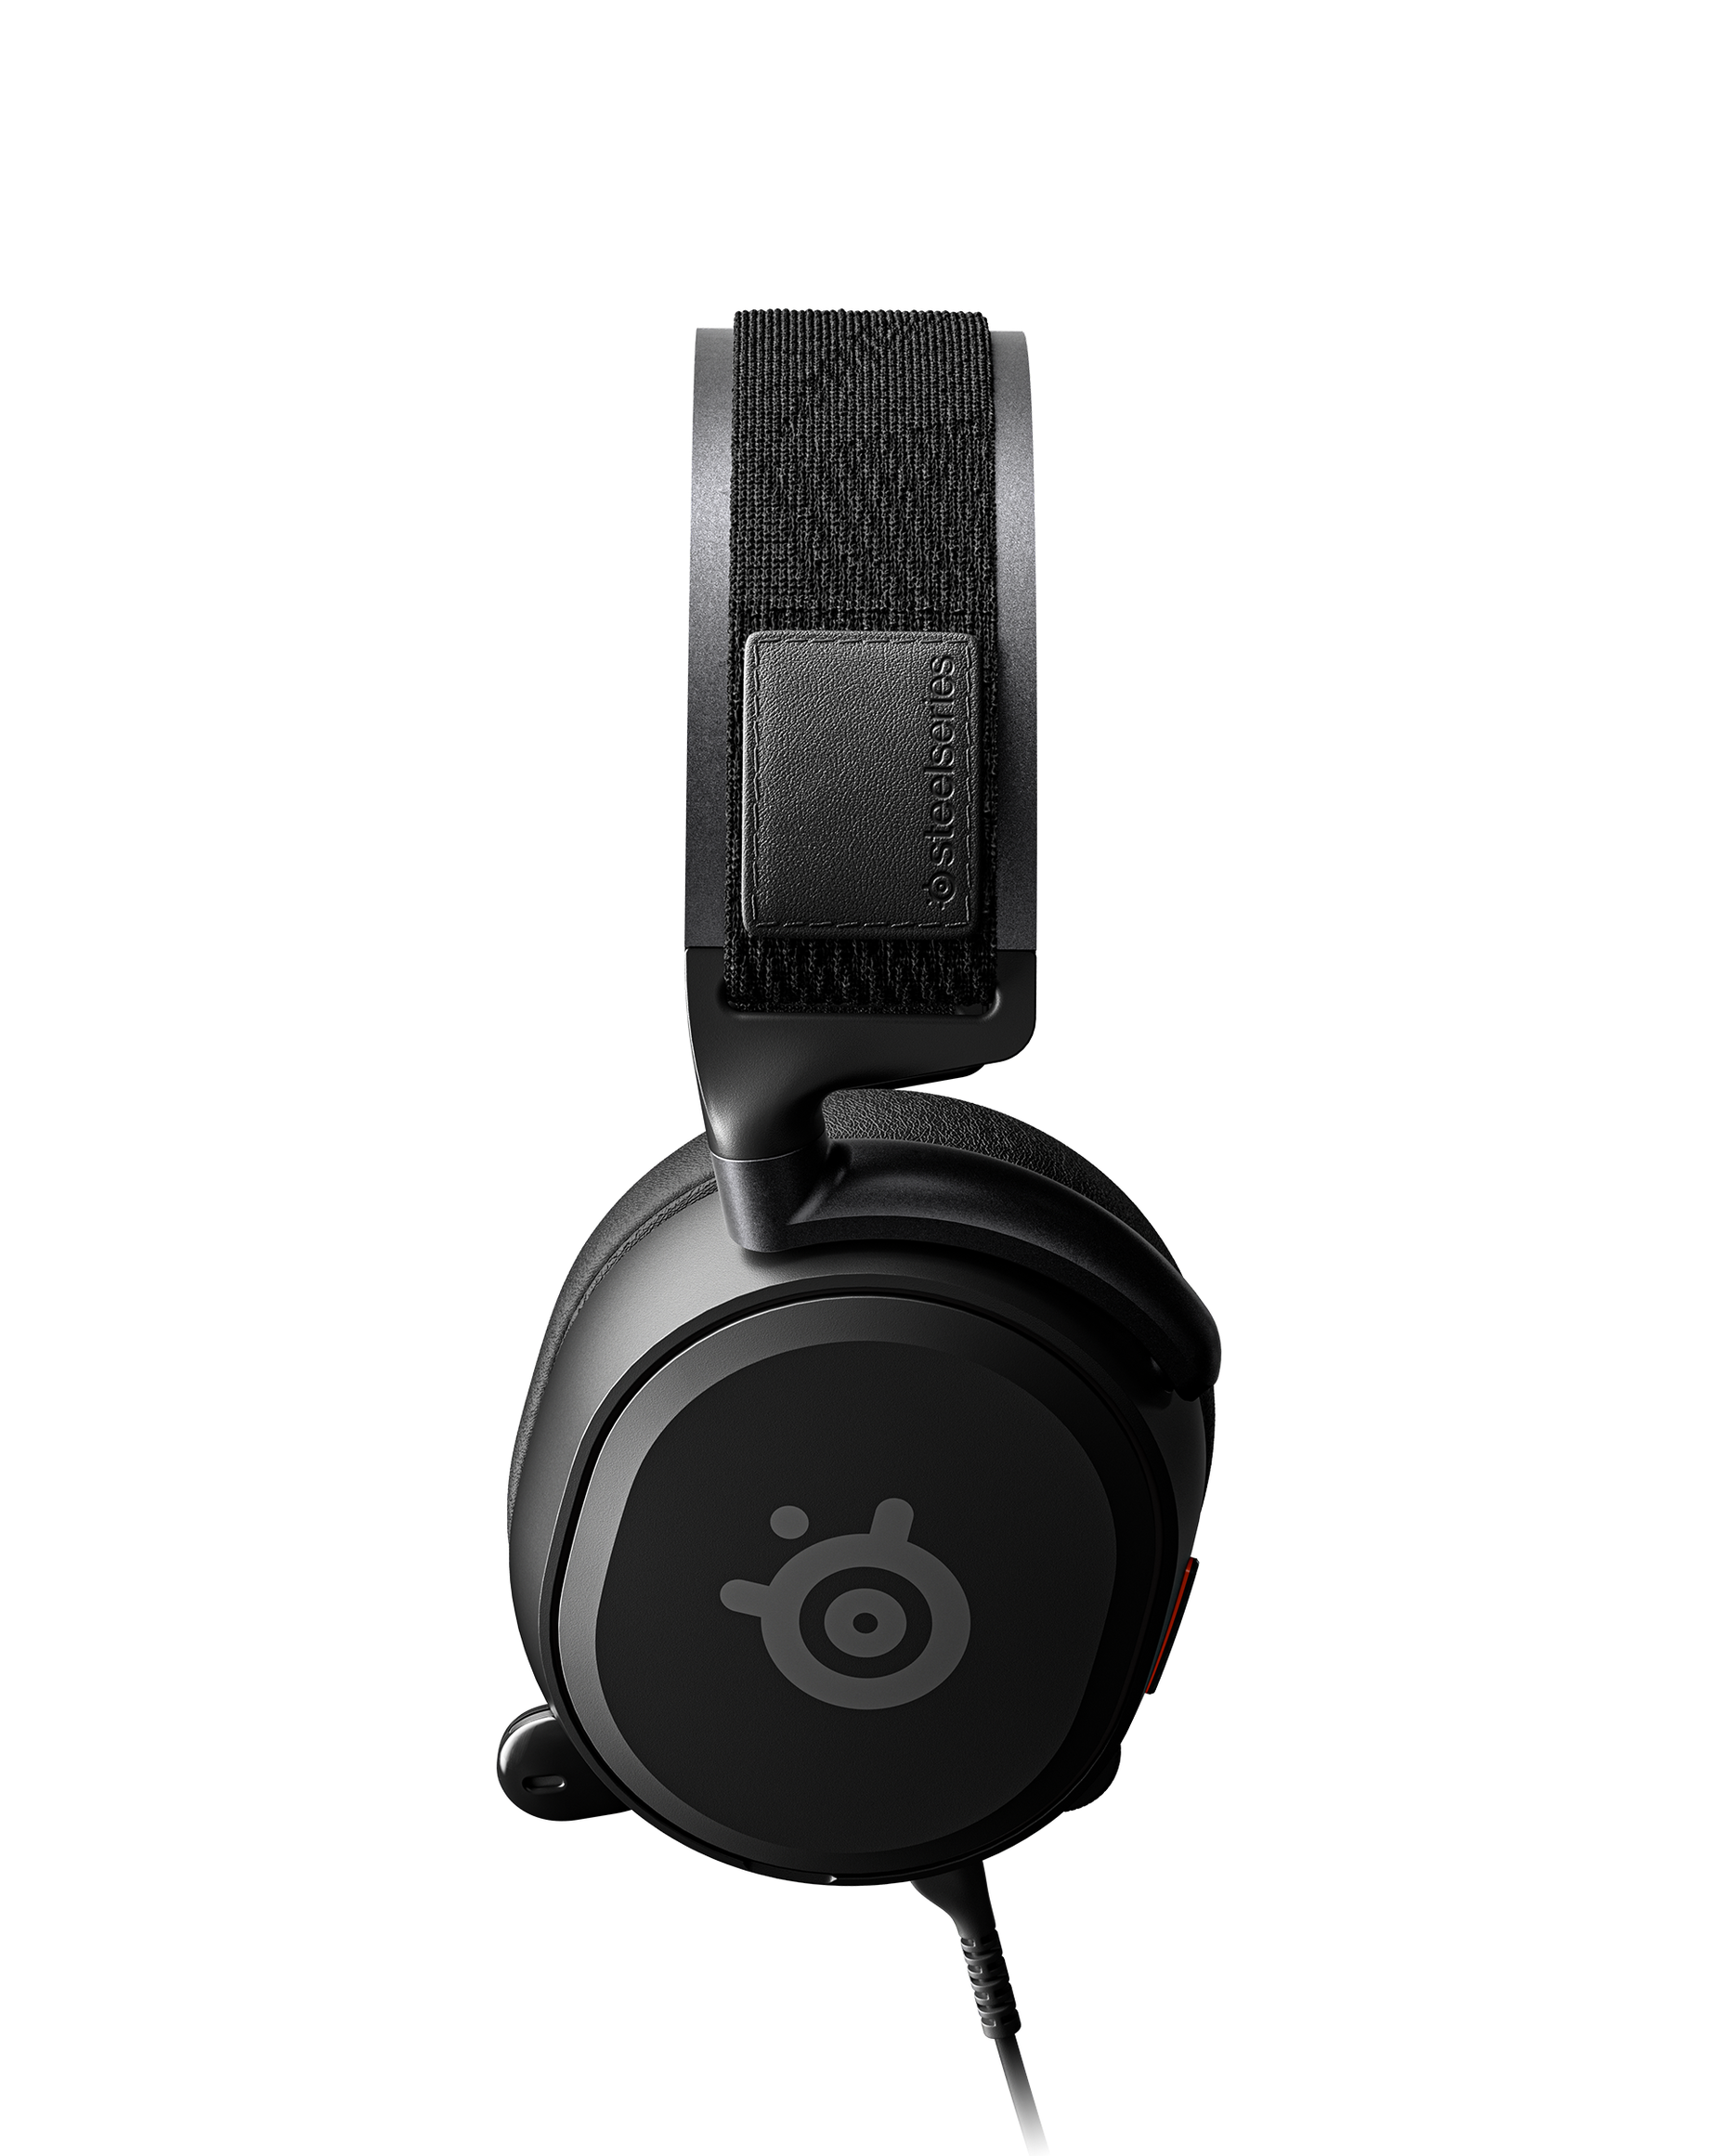 A side view of the Arctis Prime showing off its earcups and headband.